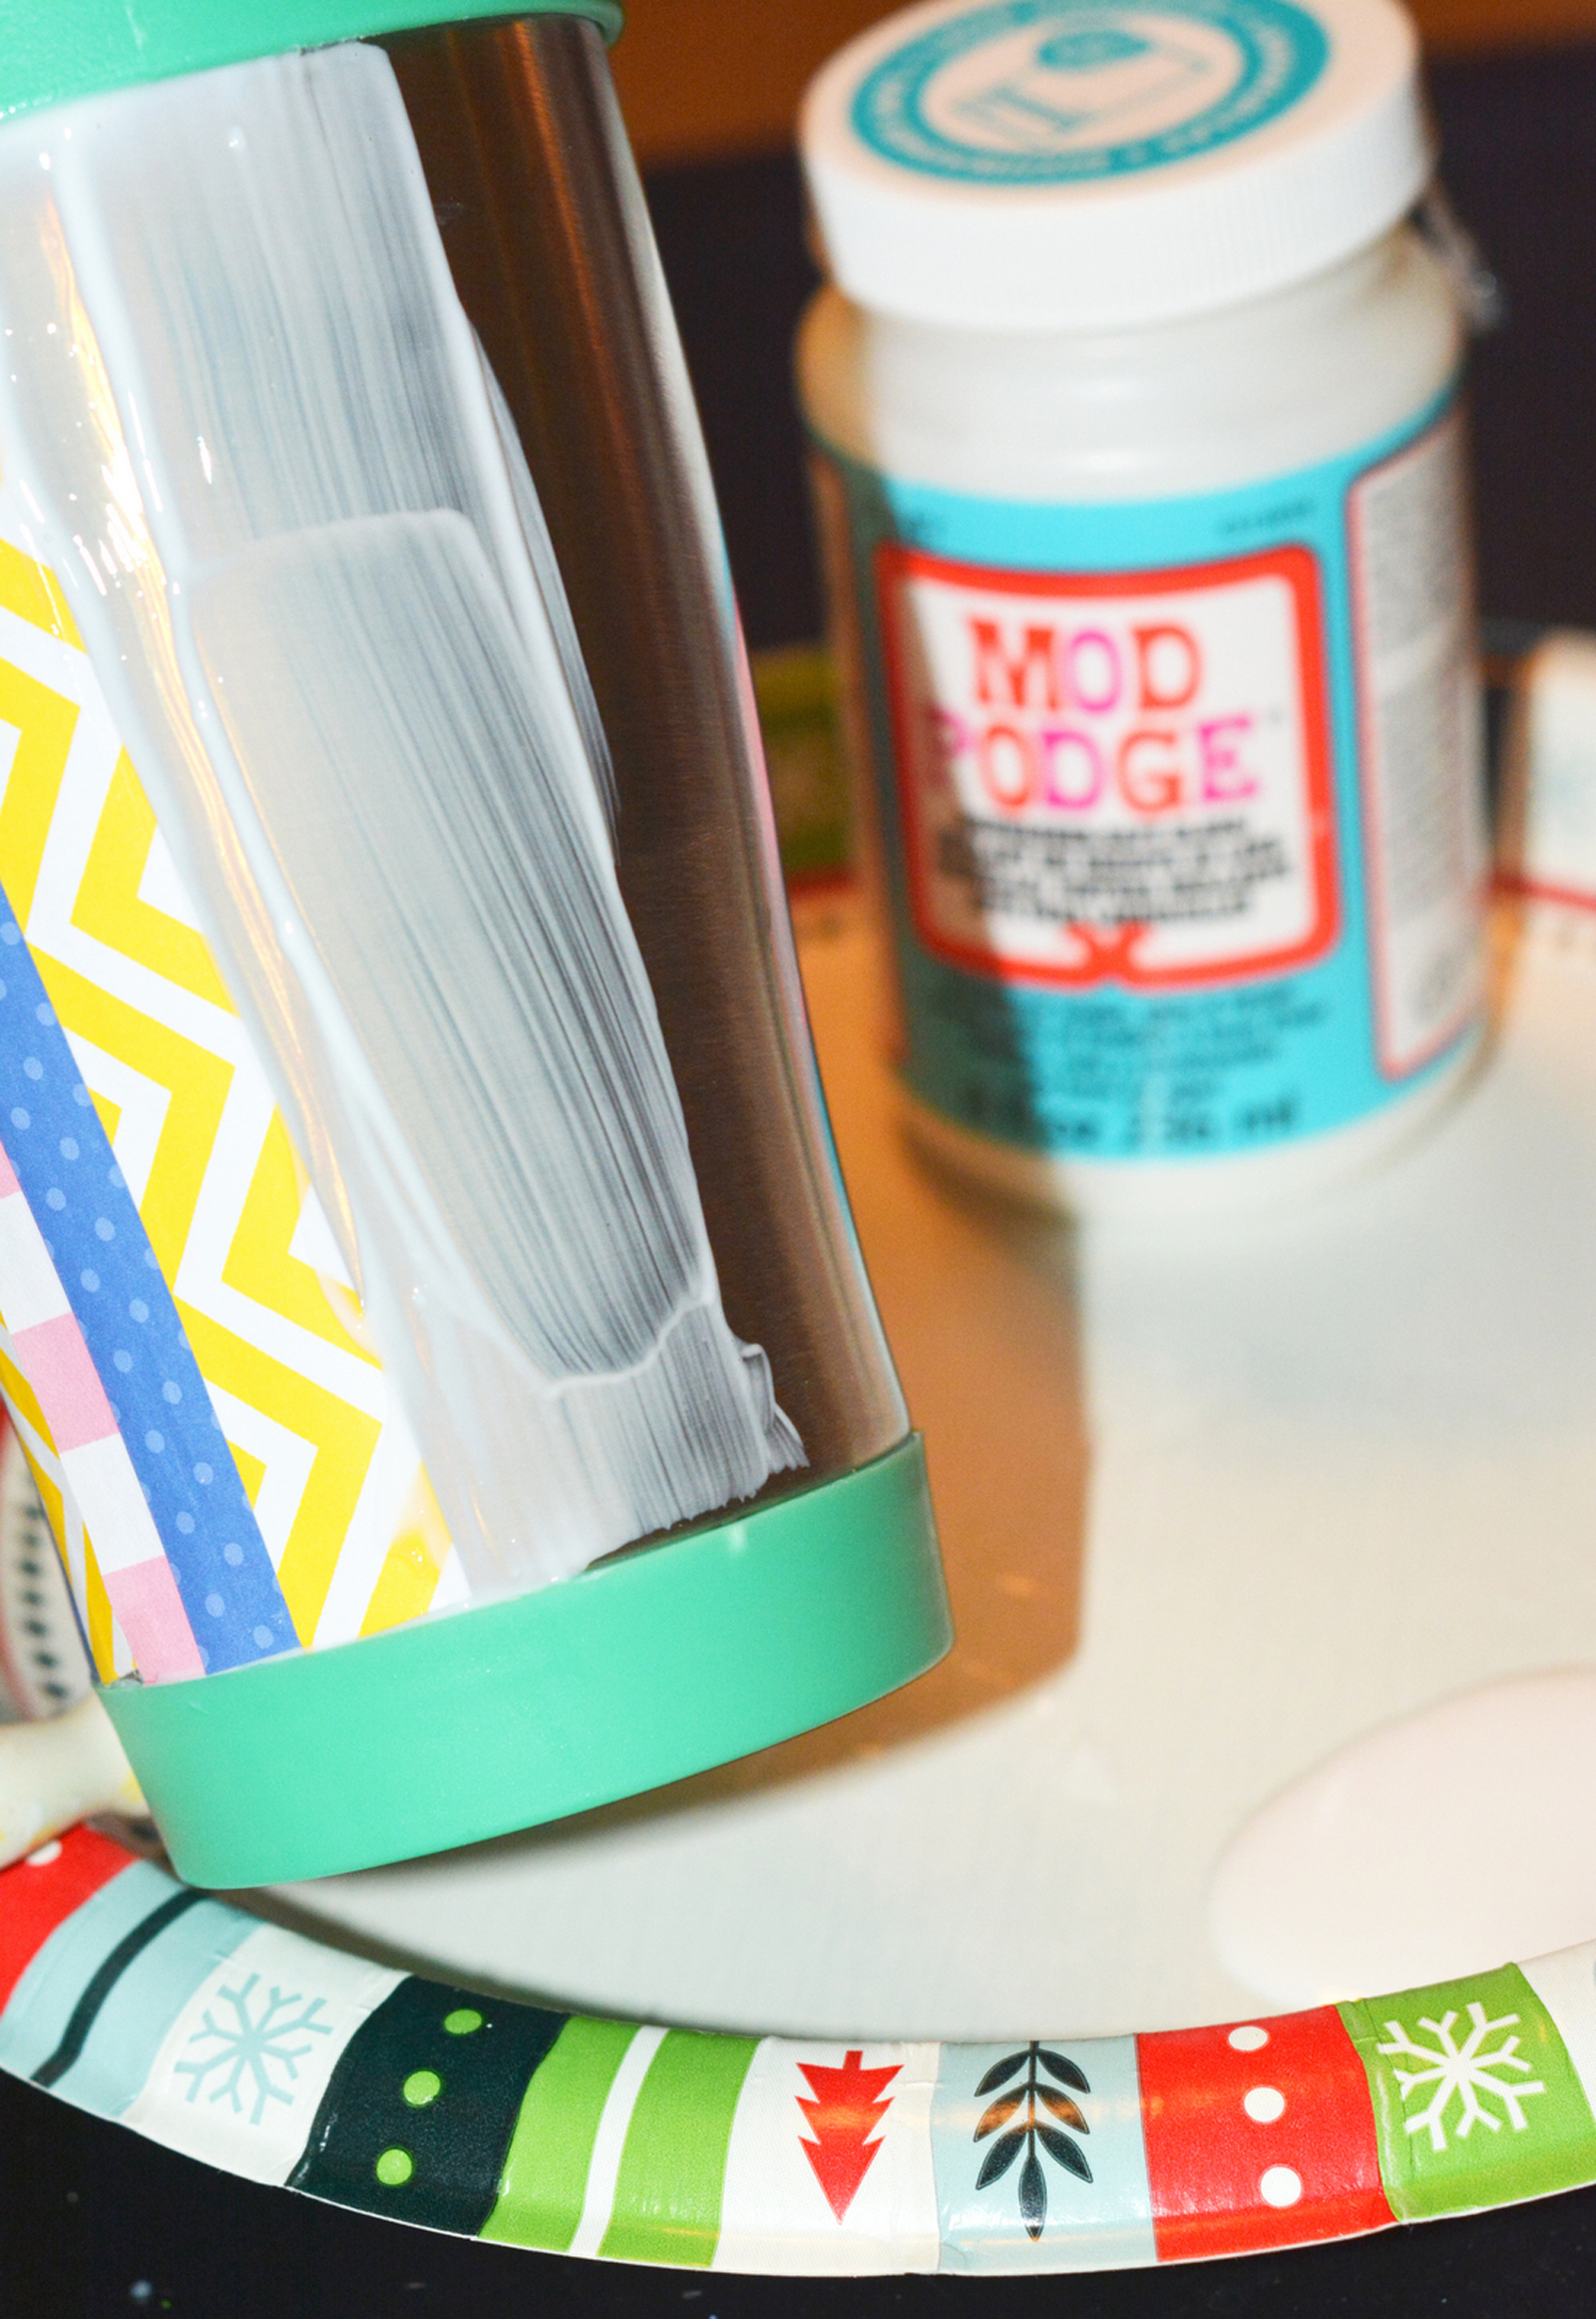 Placing paper on top of the Mod Podge on the side of the mug